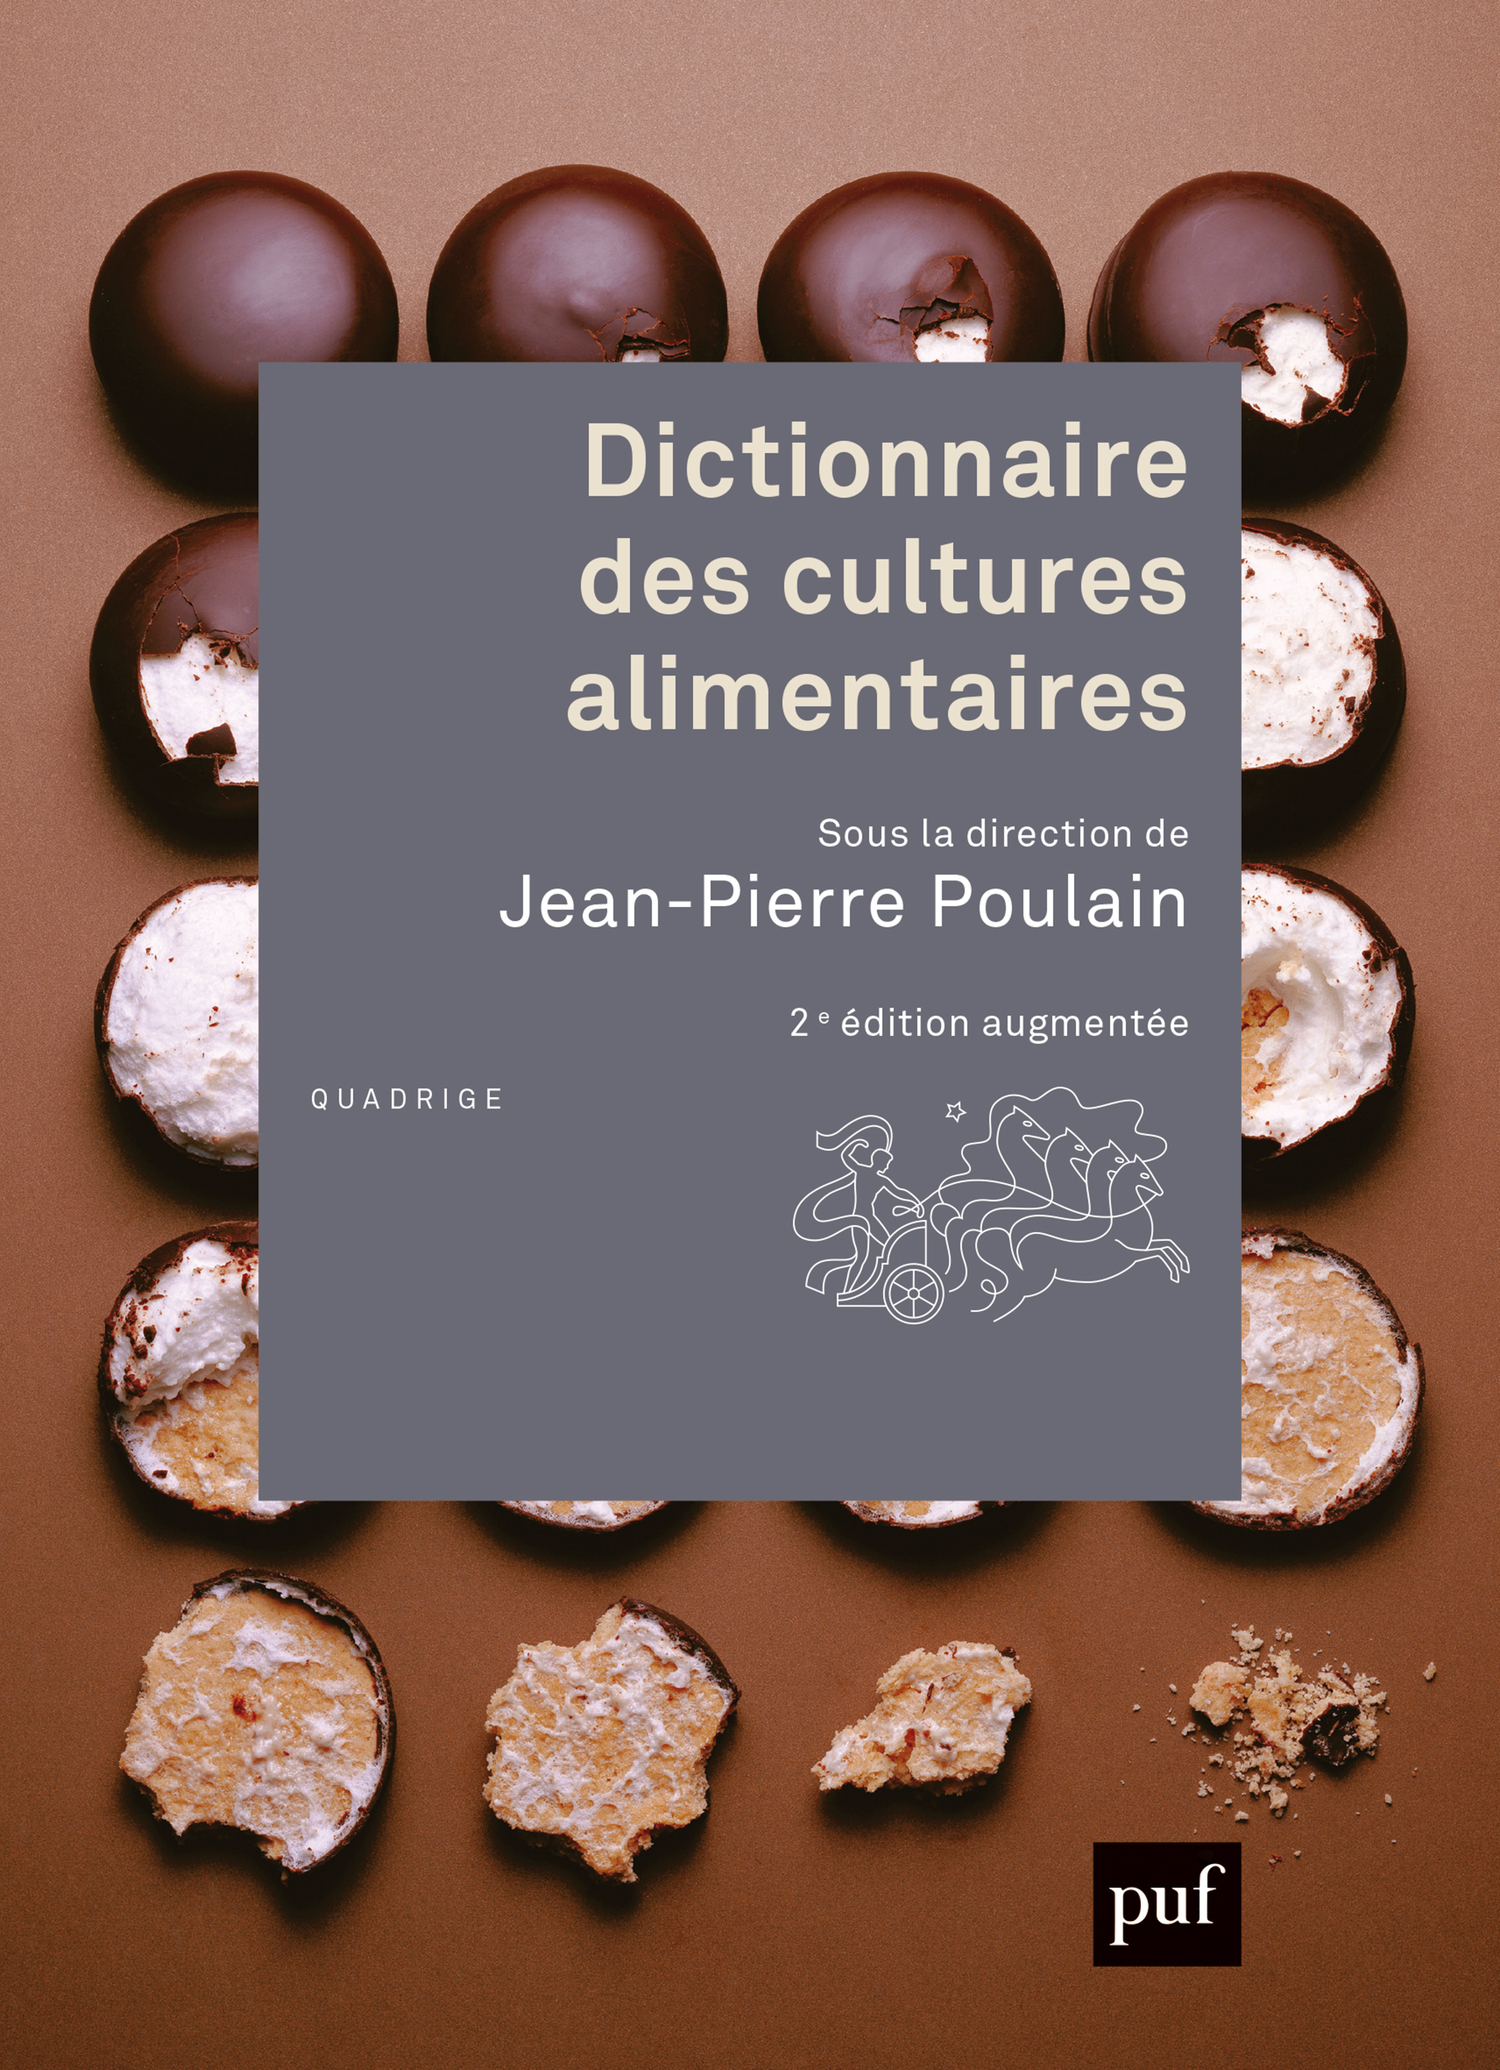 Dictionnaire des cultures alimentaires De Jean-Pierre Poulain - Presses Universitaires de France